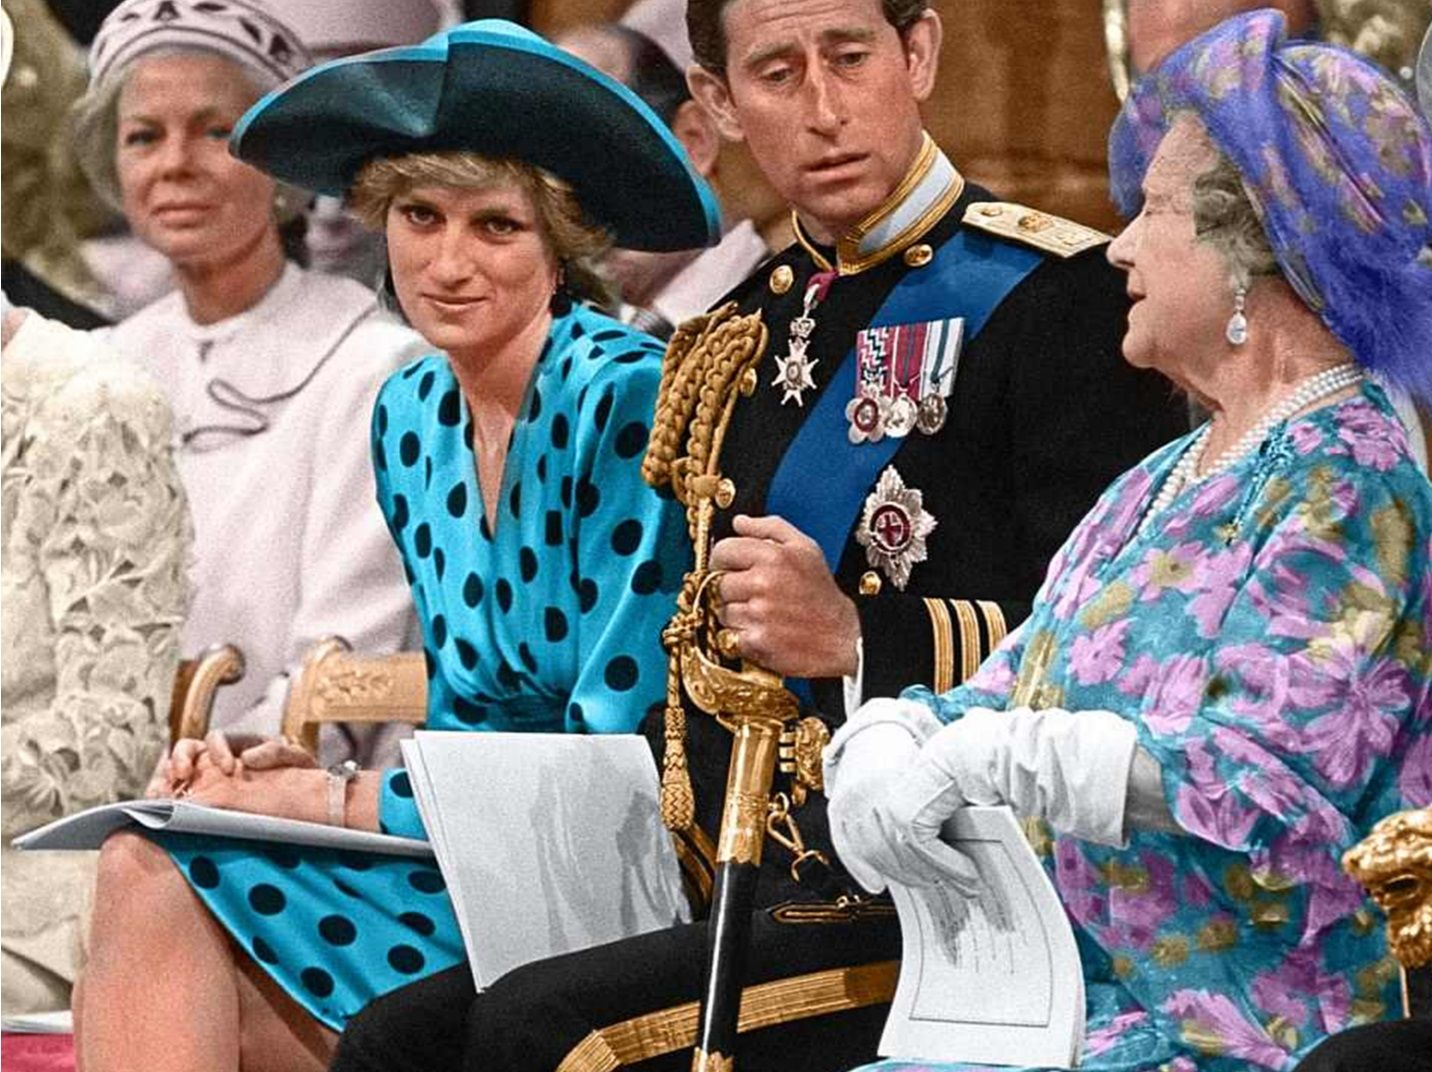 July 23, 1986 Princess Diana, Prince Charles and Queen